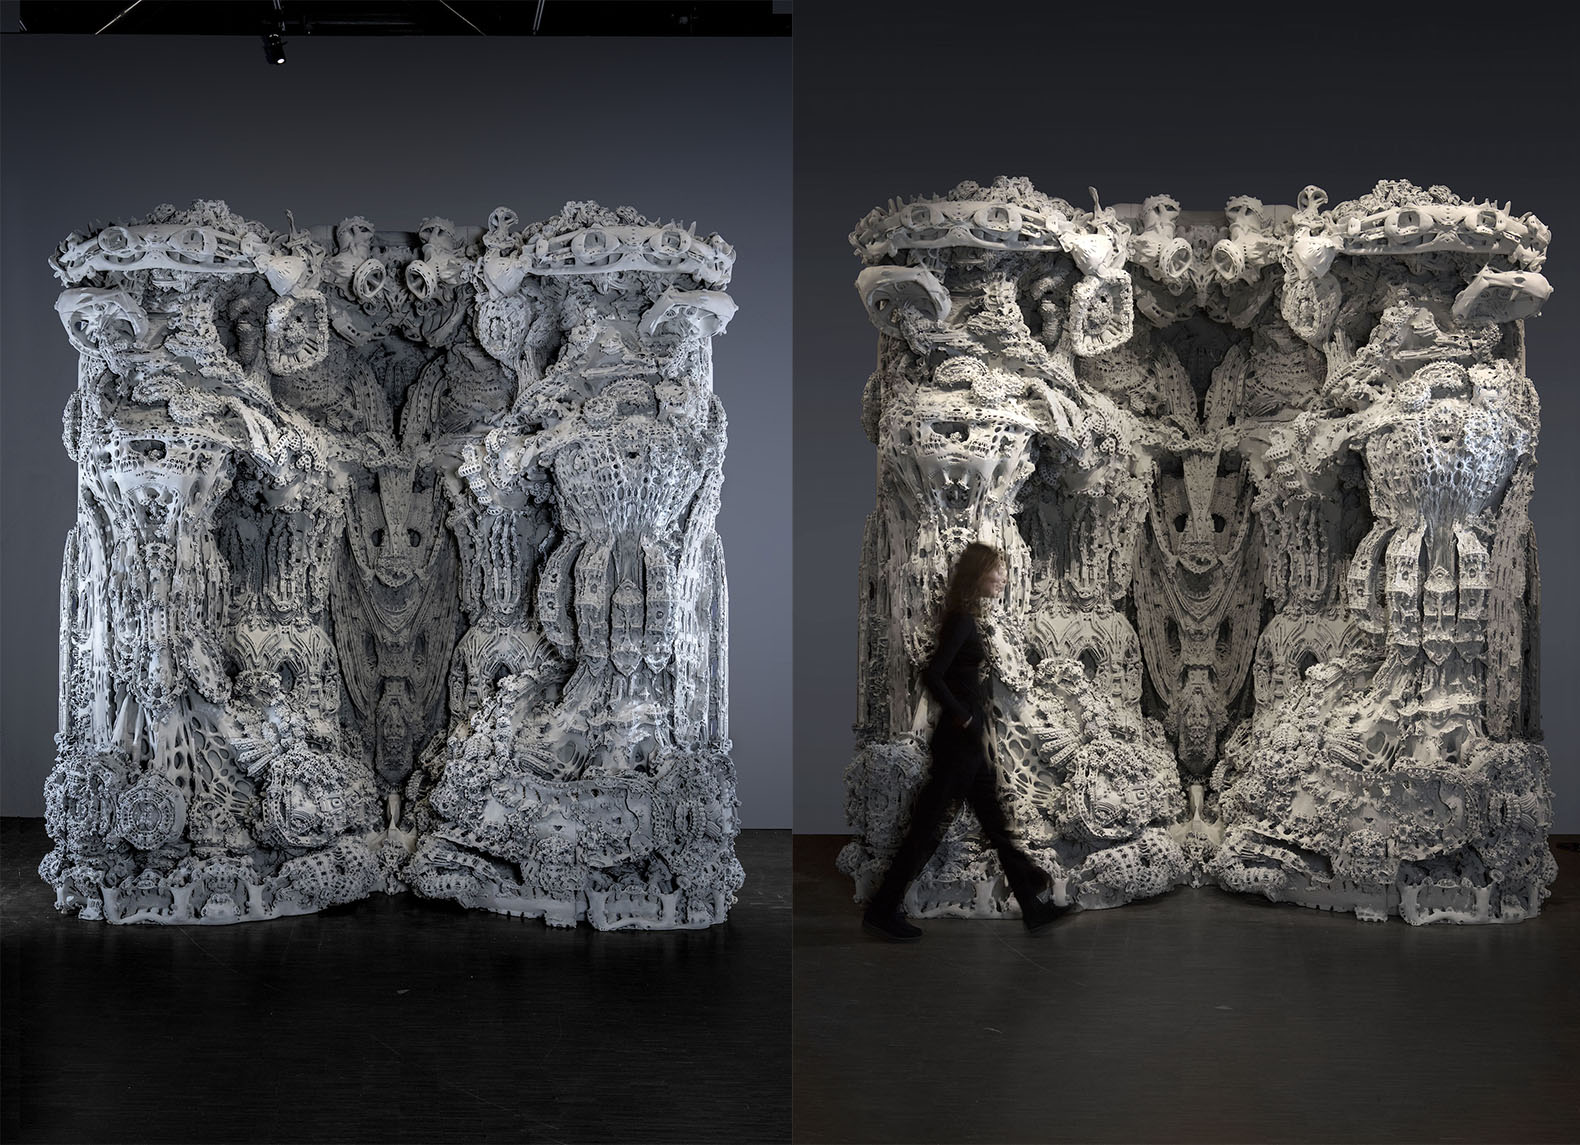 Jaw-dropping 3D-printed grotto explores the future of architecture